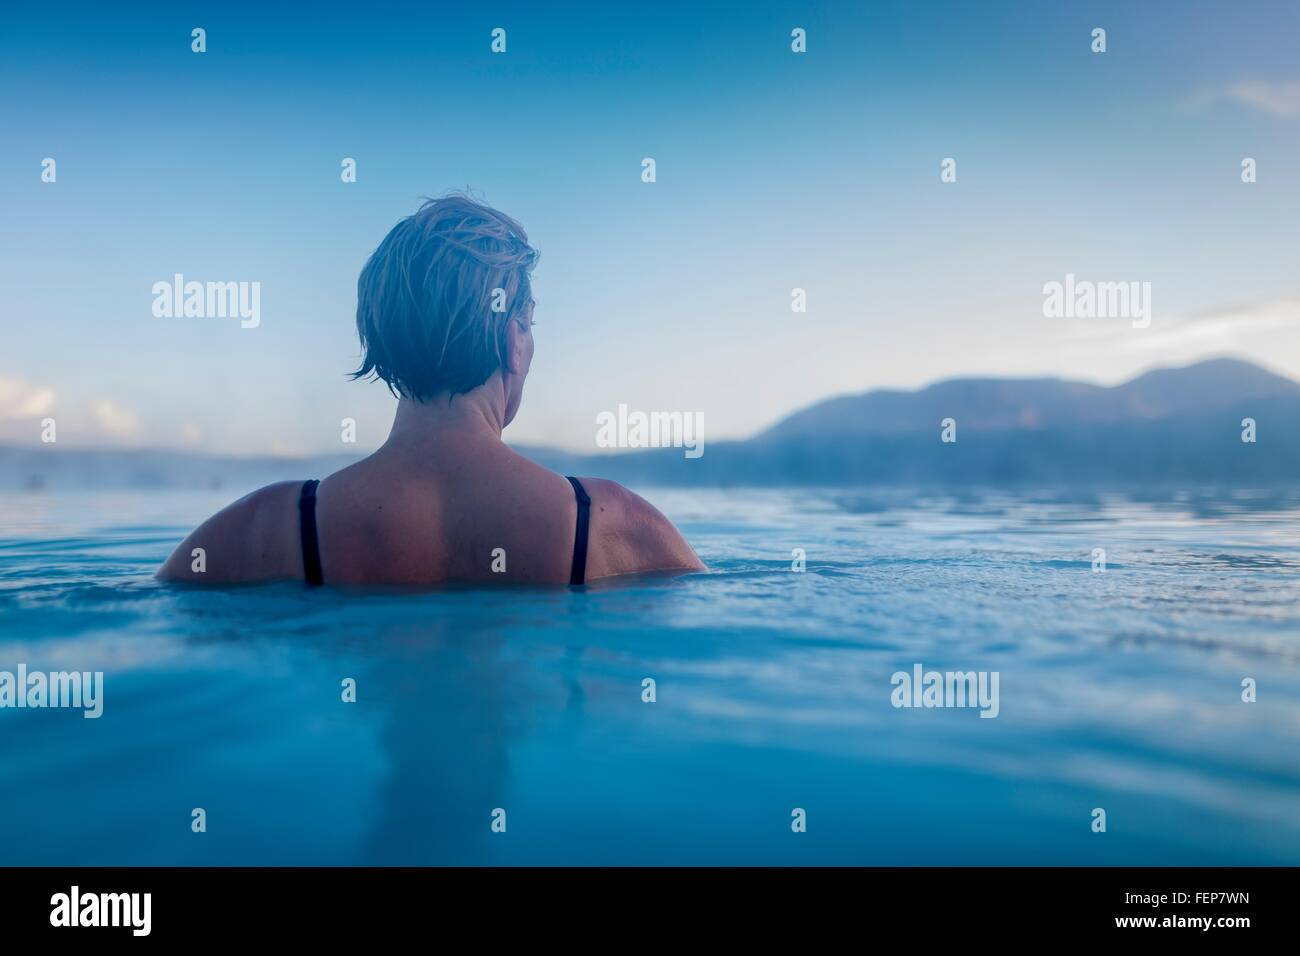 Backview of woman in lagoon waters - Stock Image